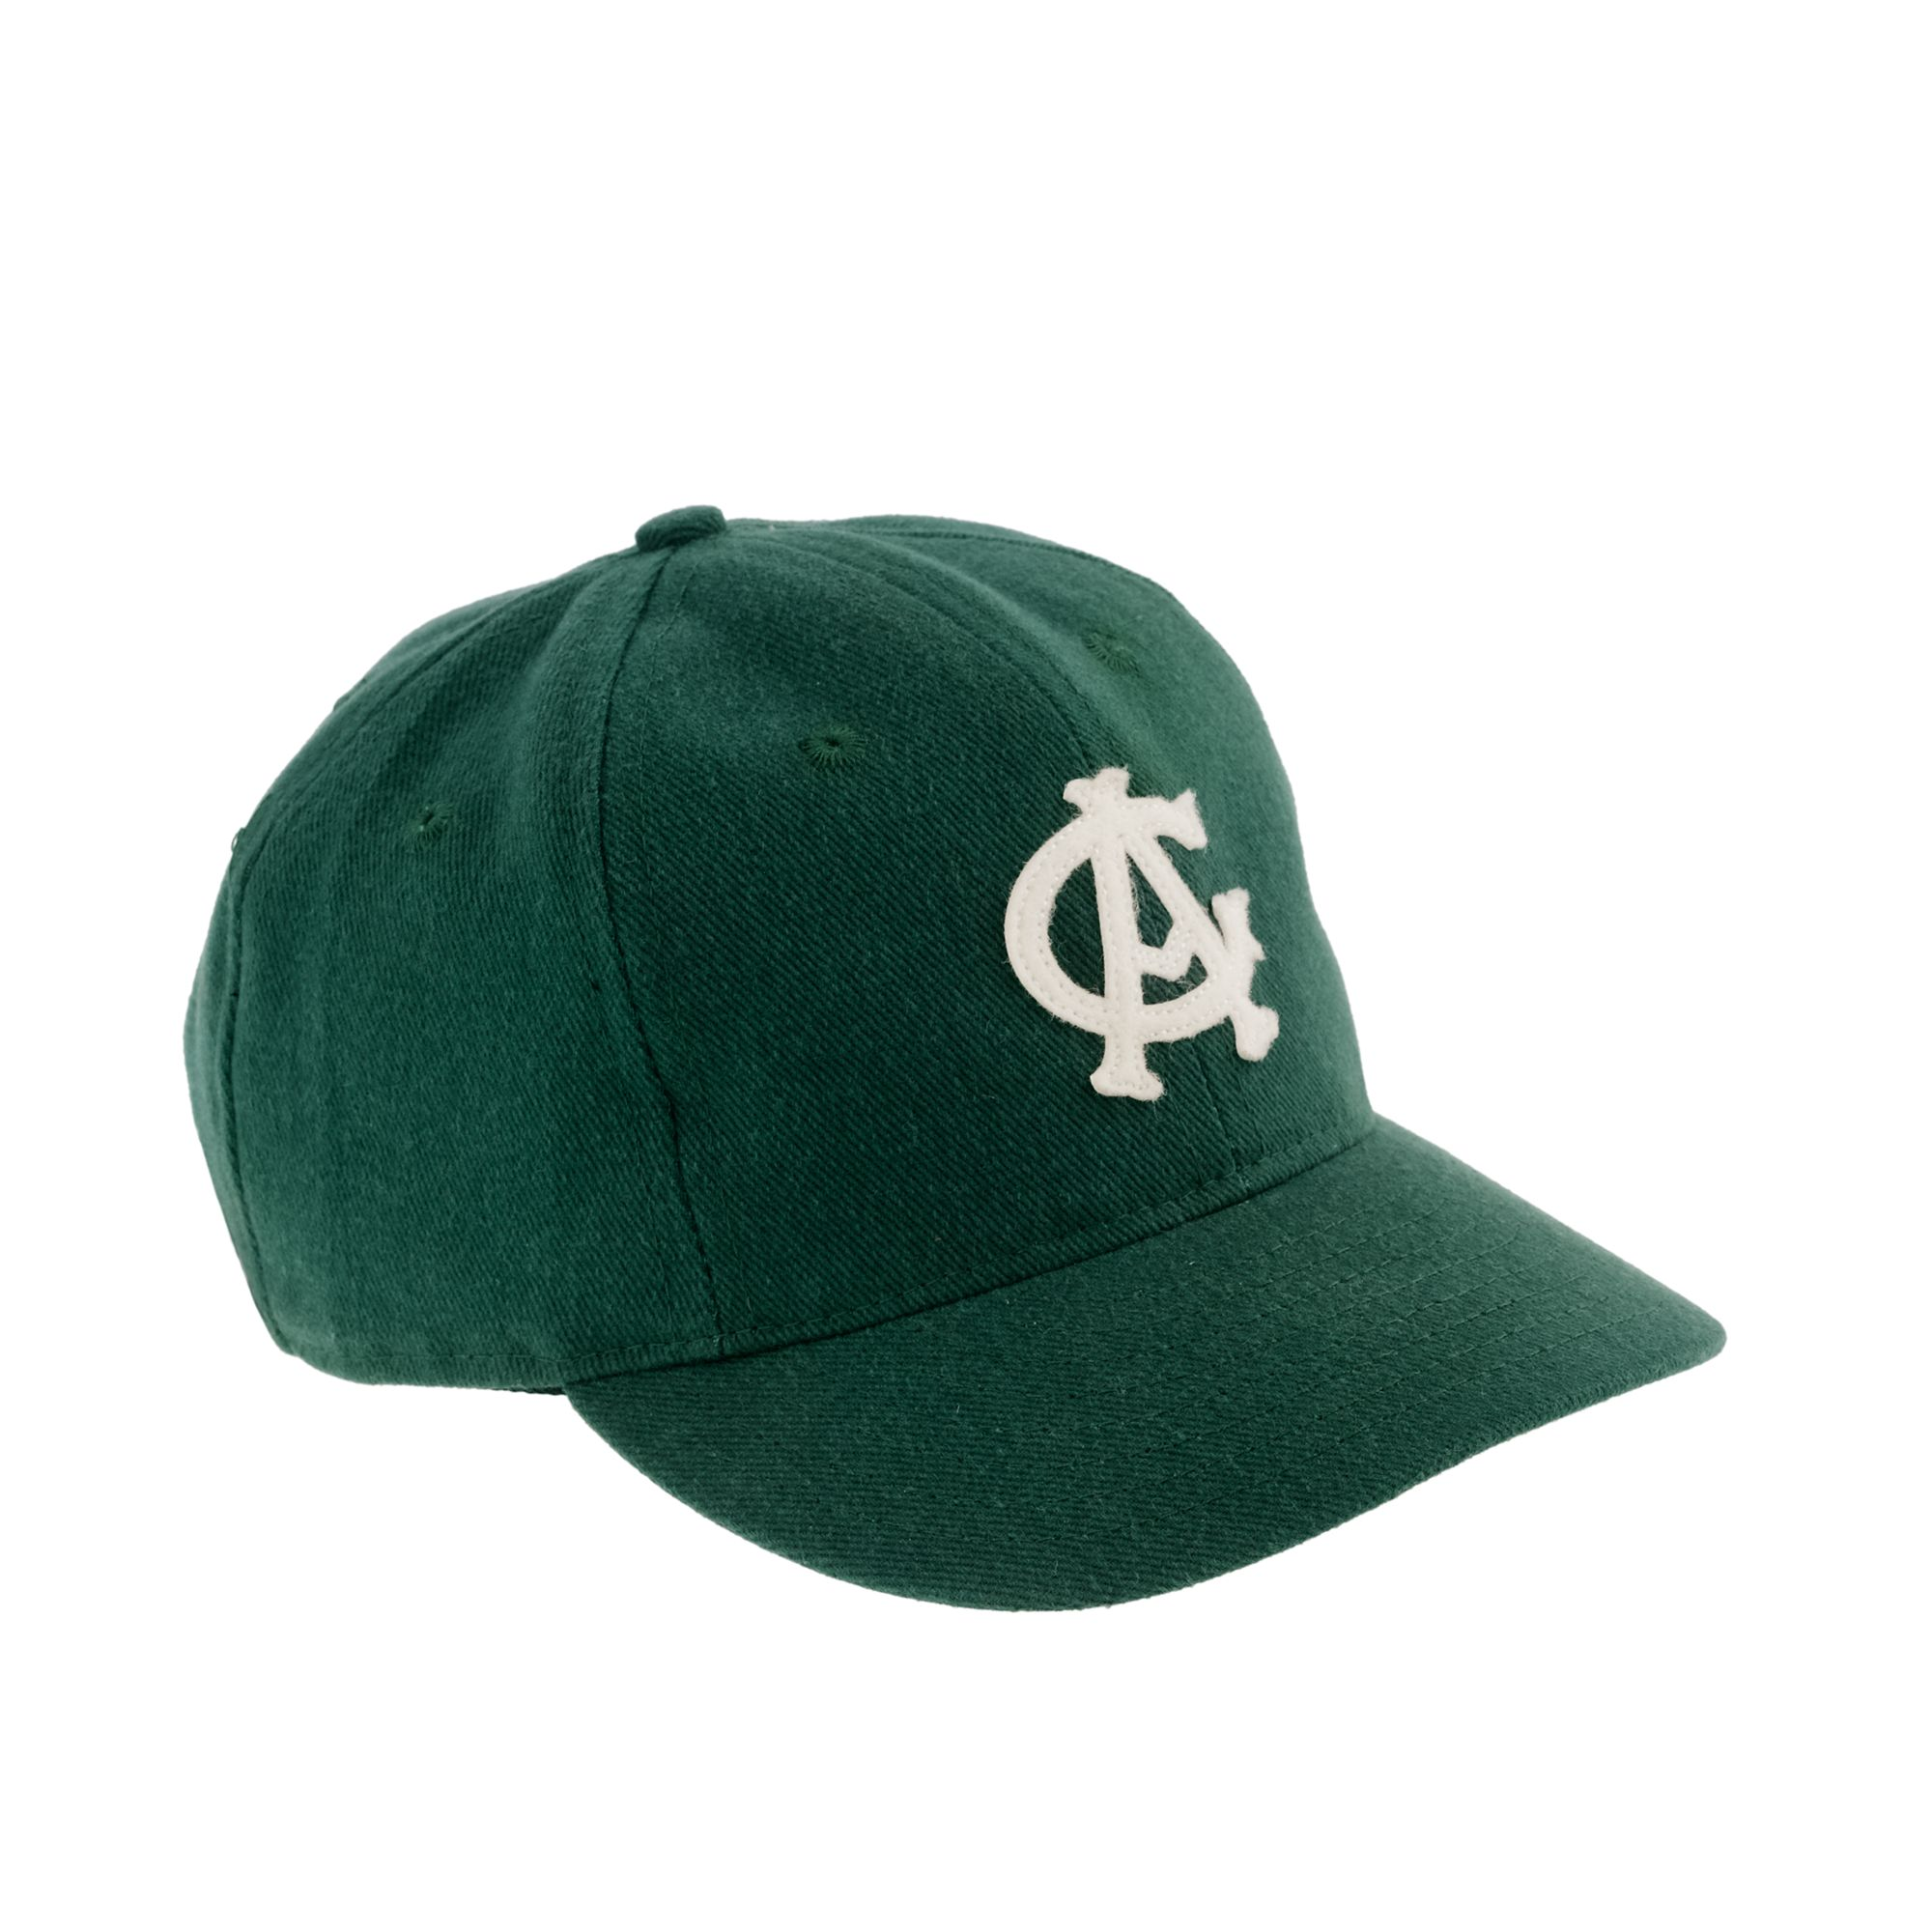 J.Crew Ebbets Field Flannels For Jcrew Twill Ball Cap in Green for ... 4e5acb2ed1af